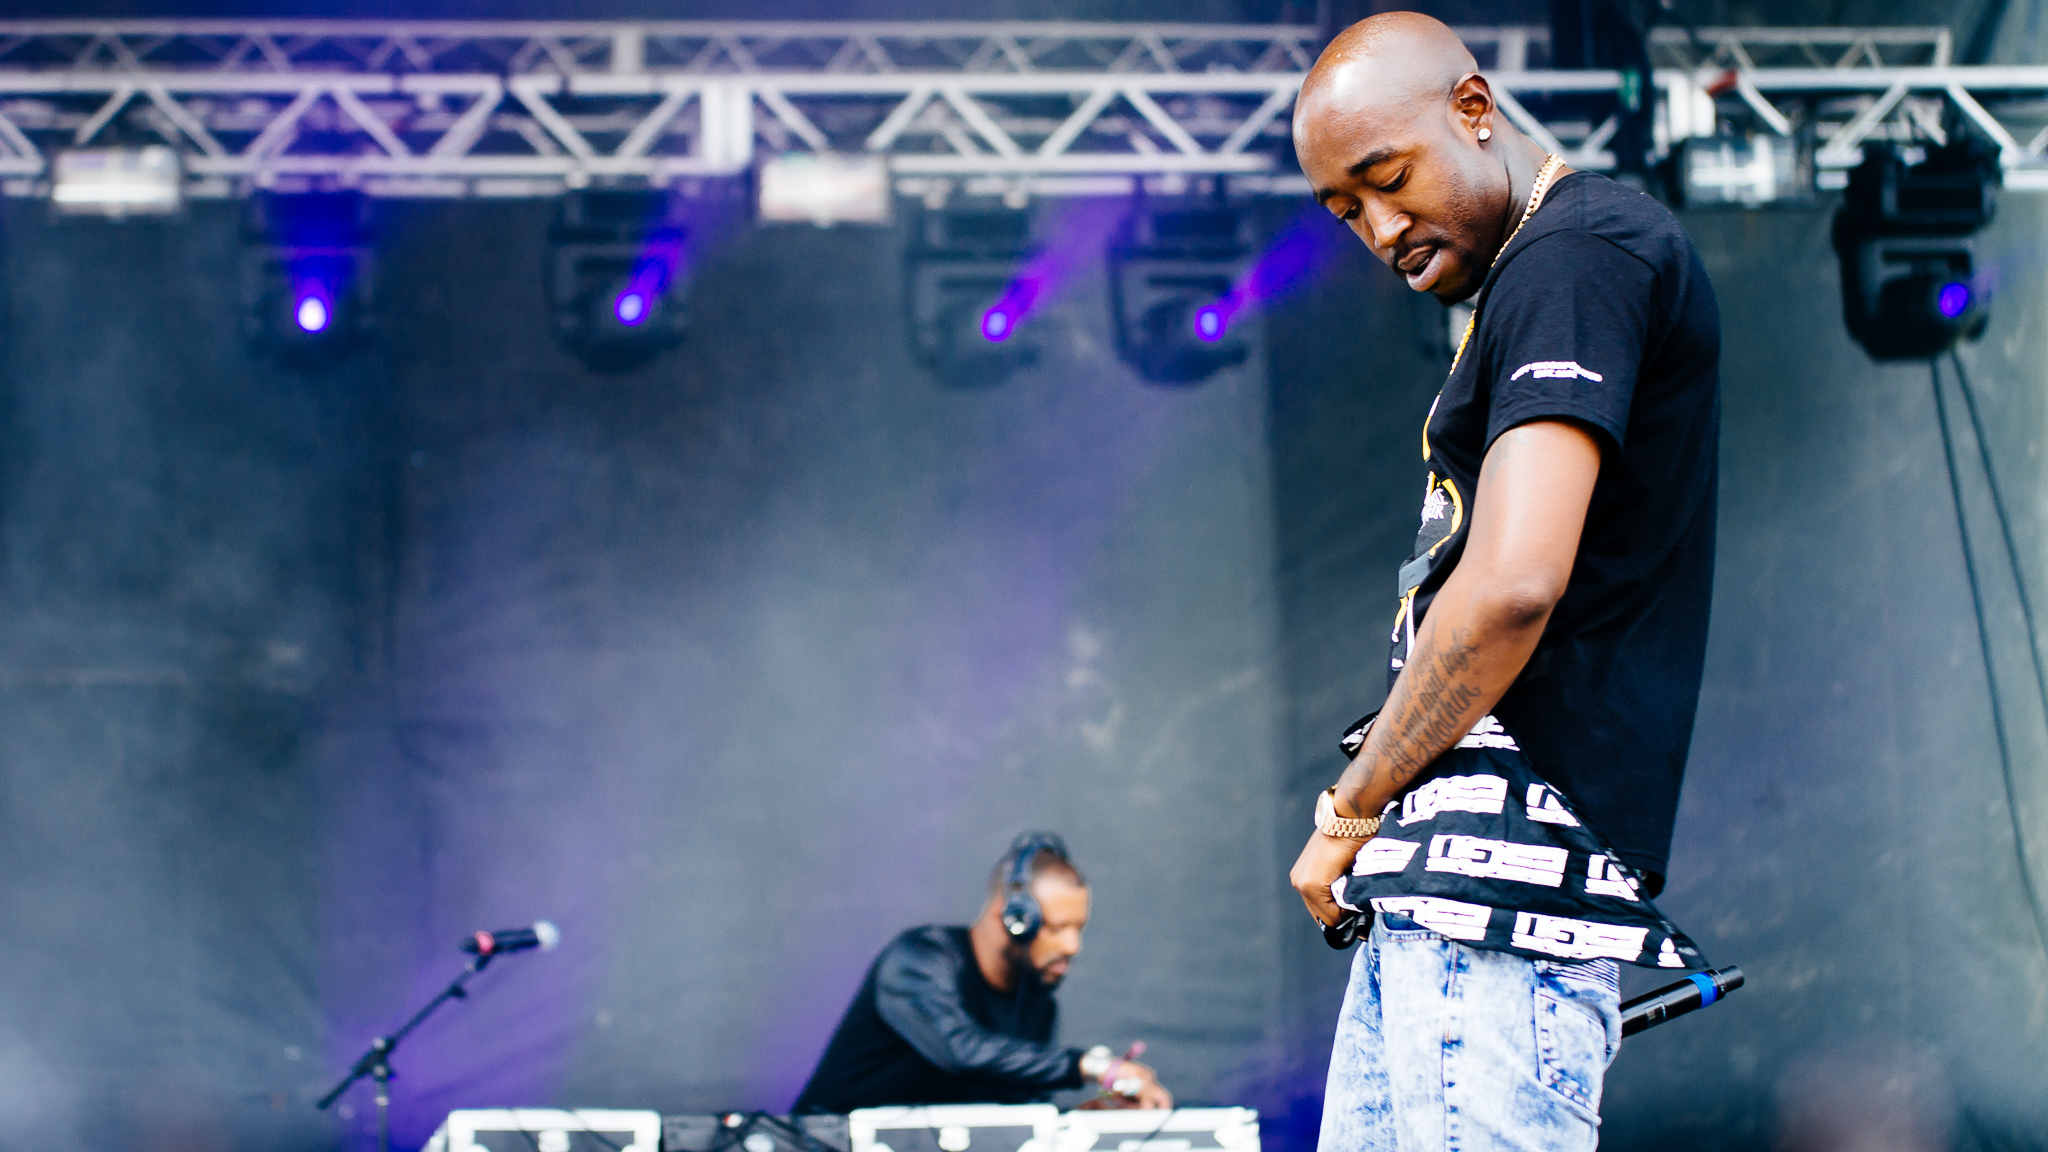 Madlib & Freddie Gibbs played to a sold out crowd under stormy skies on Sunday at Pitchfork Music Festival, July 19, 2015.